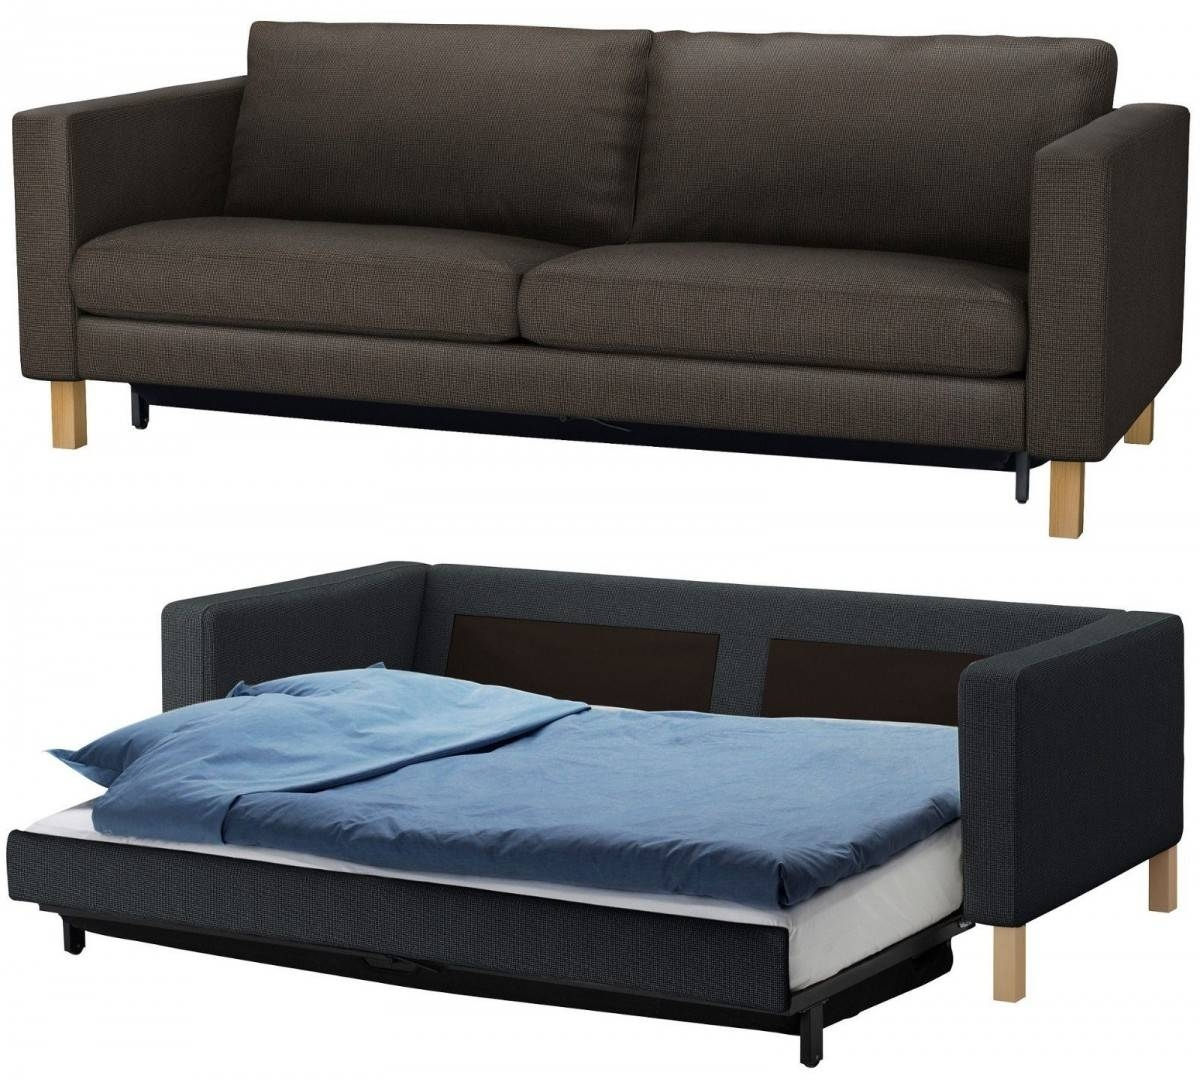 Furniture: Ikea Sleeper Sofa | Sleeper Sectional Sofa Ikea for Ikea Sectional Sofa Sleeper (Image 9 of 25)